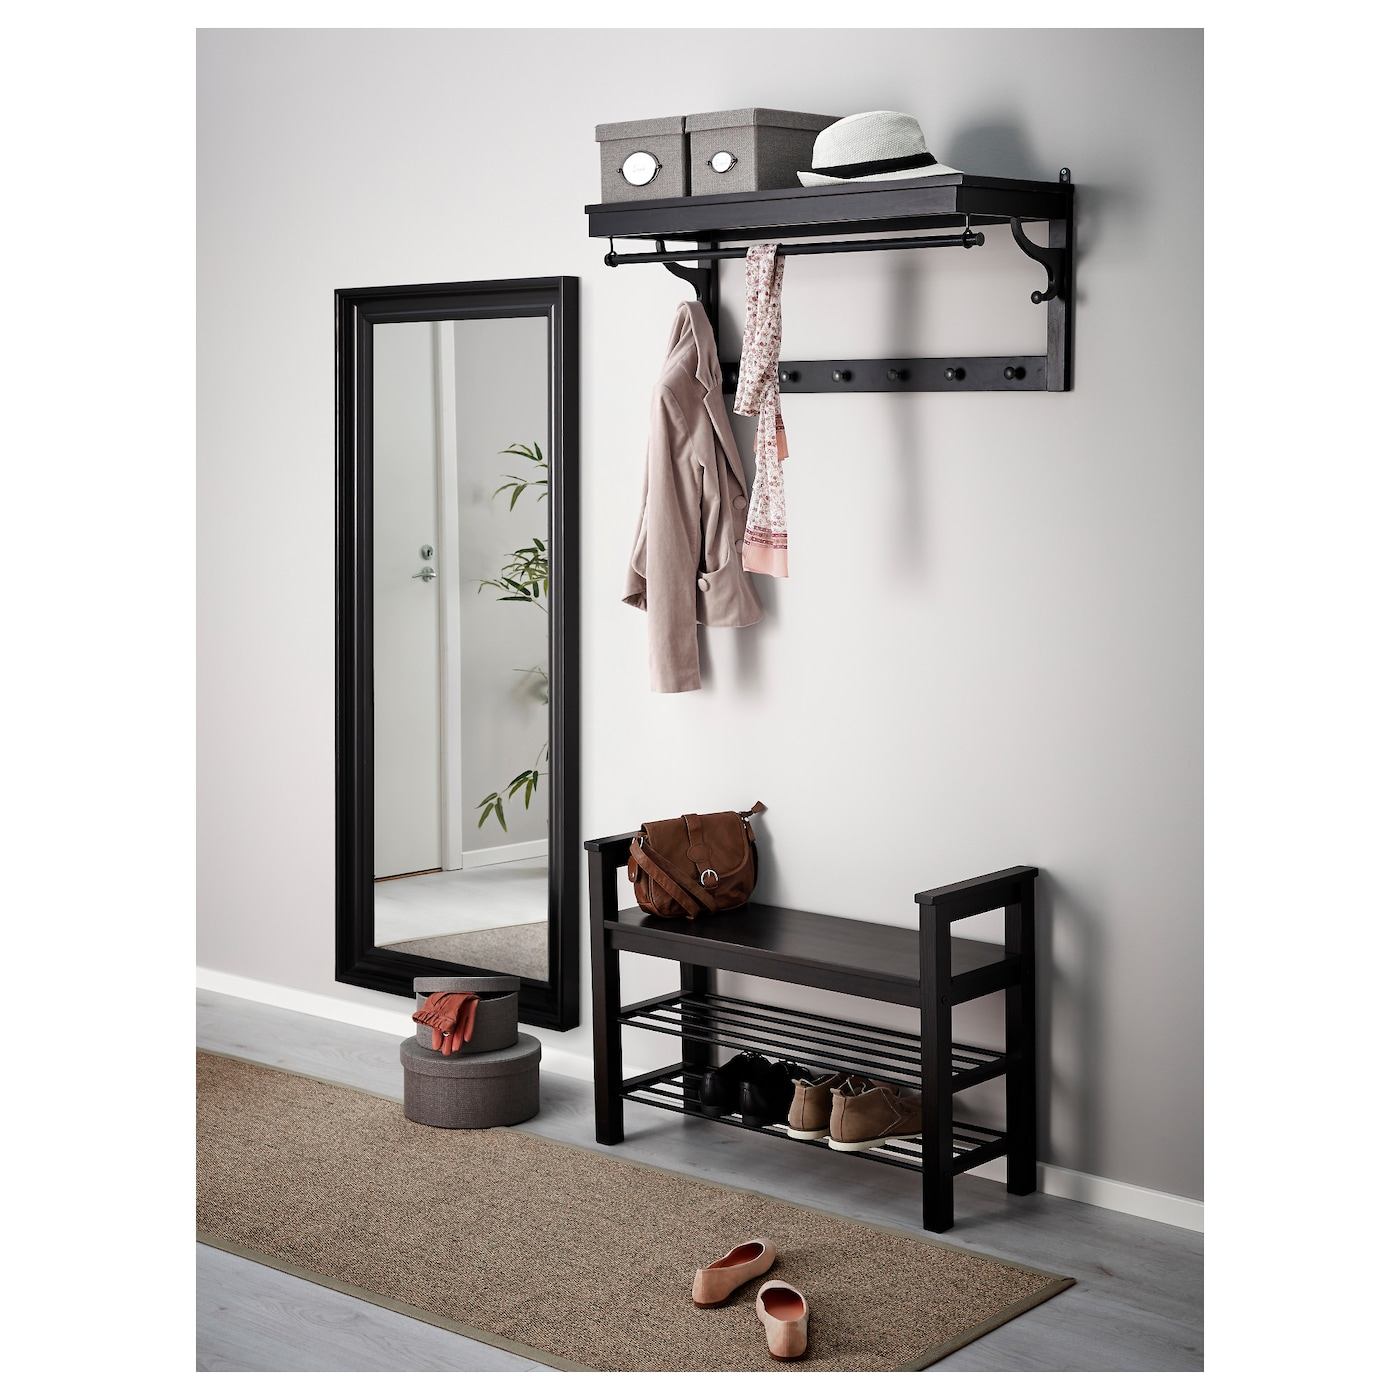 hemnes bench with shoe storage black brown 85 x 32 cm ikea. Black Bedroom Furniture Sets. Home Design Ideas